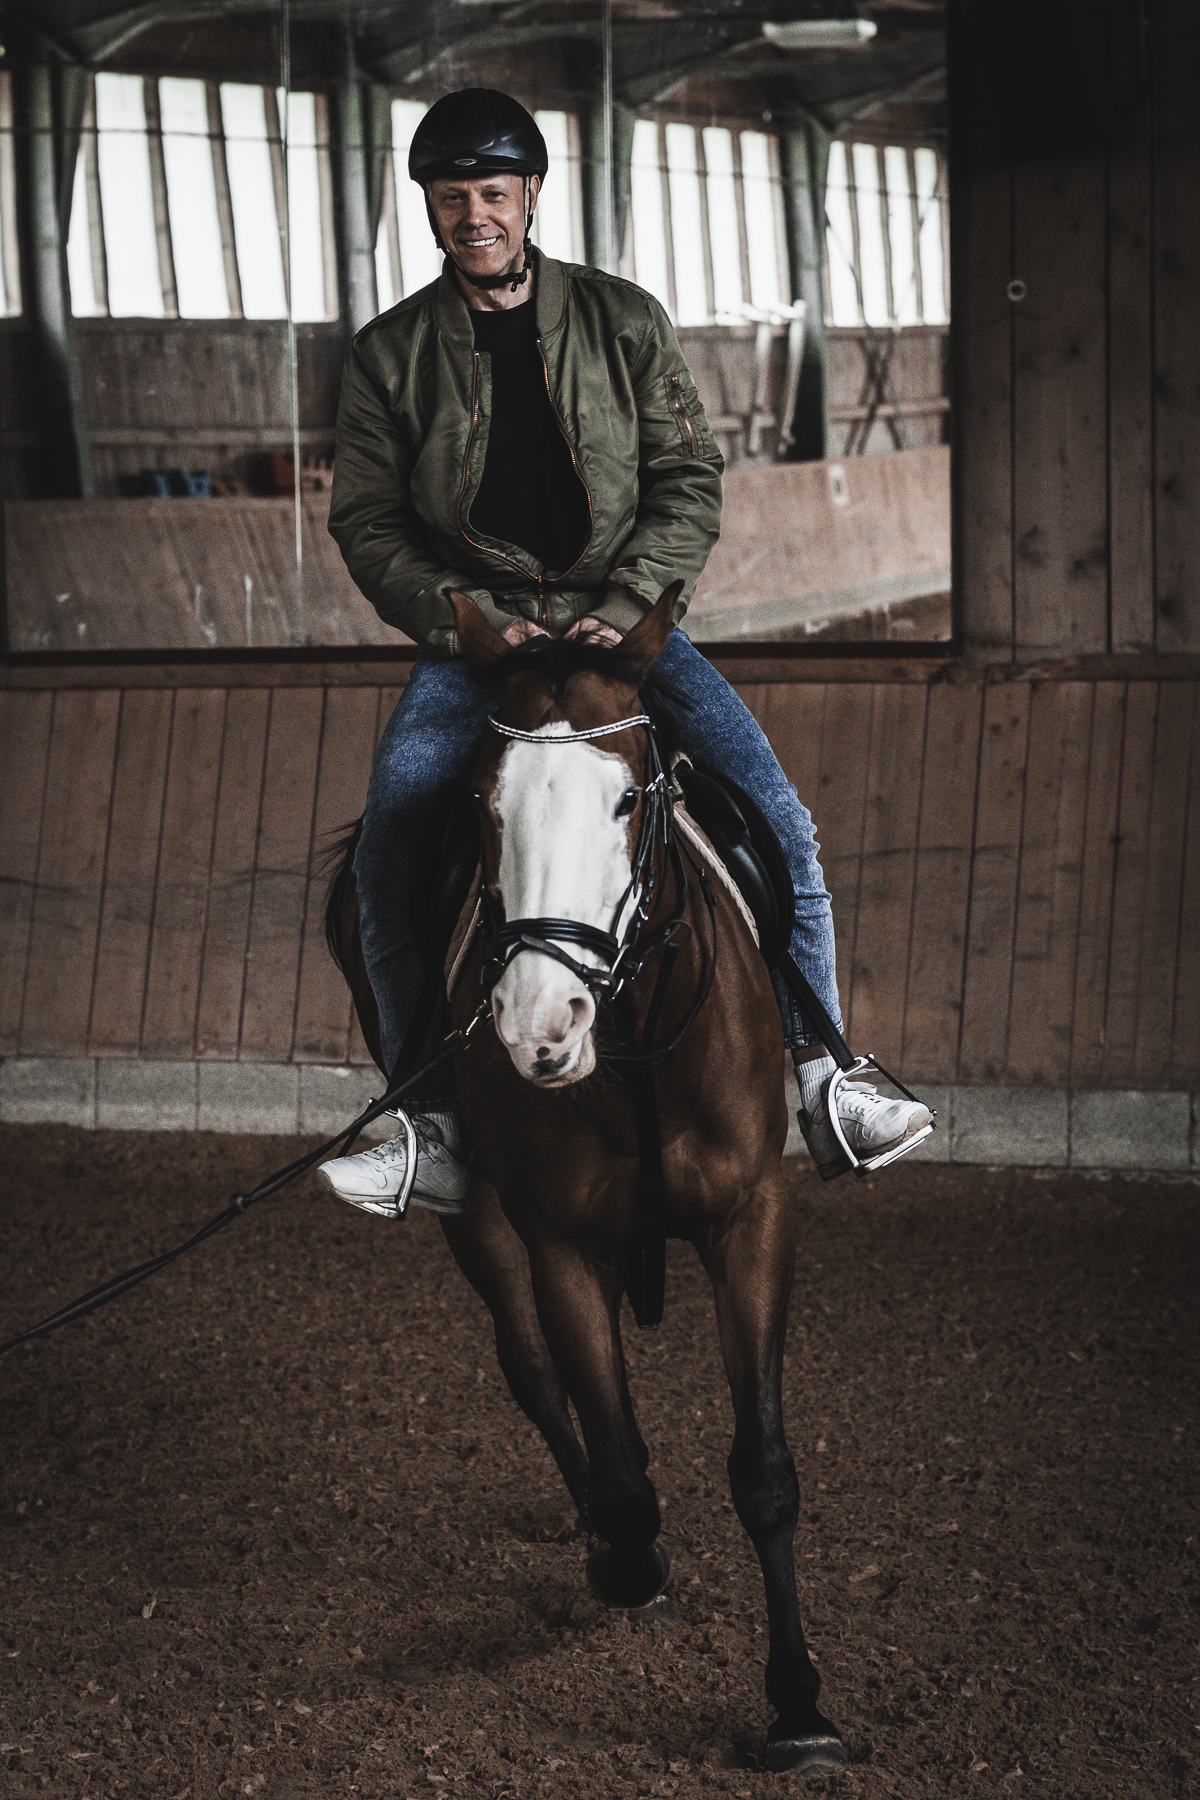 Horse Riding at Bachmair Weissach SPA Hotel Tegernsee - Fujifilm XT3 - Yes! Please Enjoy by Fanning Tseng-21.jpg